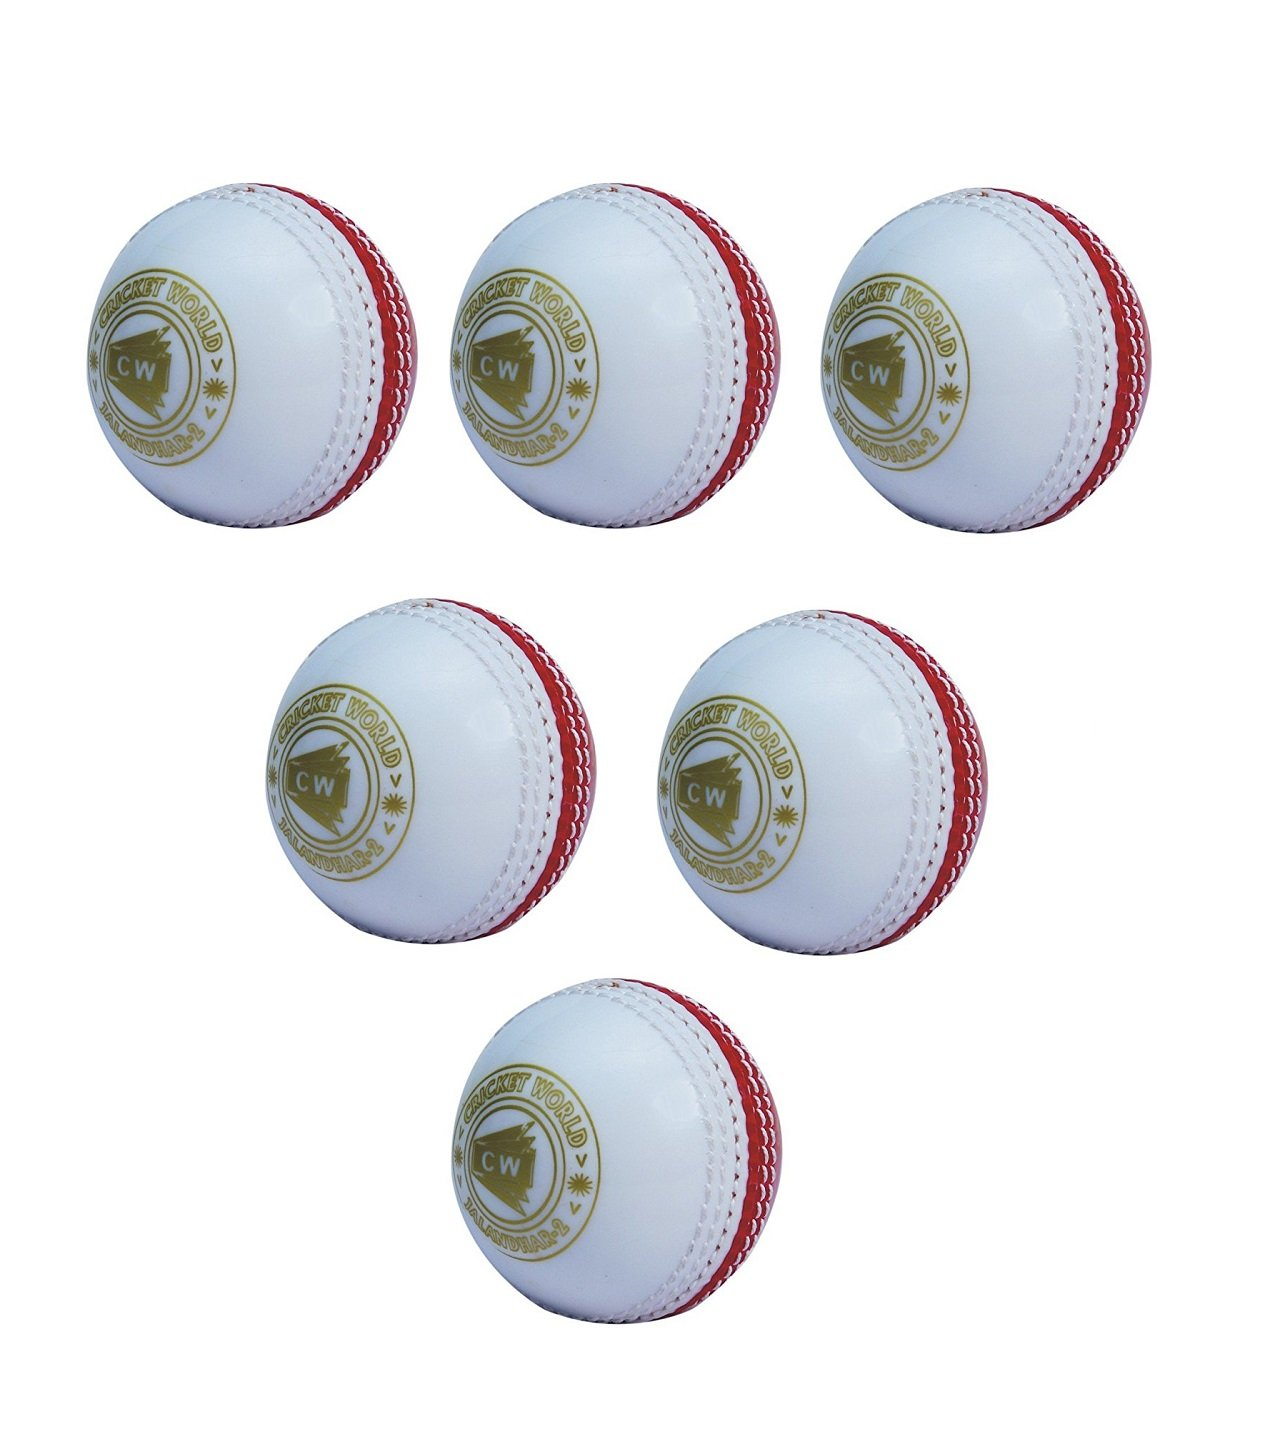 CW Balle de cricket Incroyable Poly souple (lot de 6) cricket_43